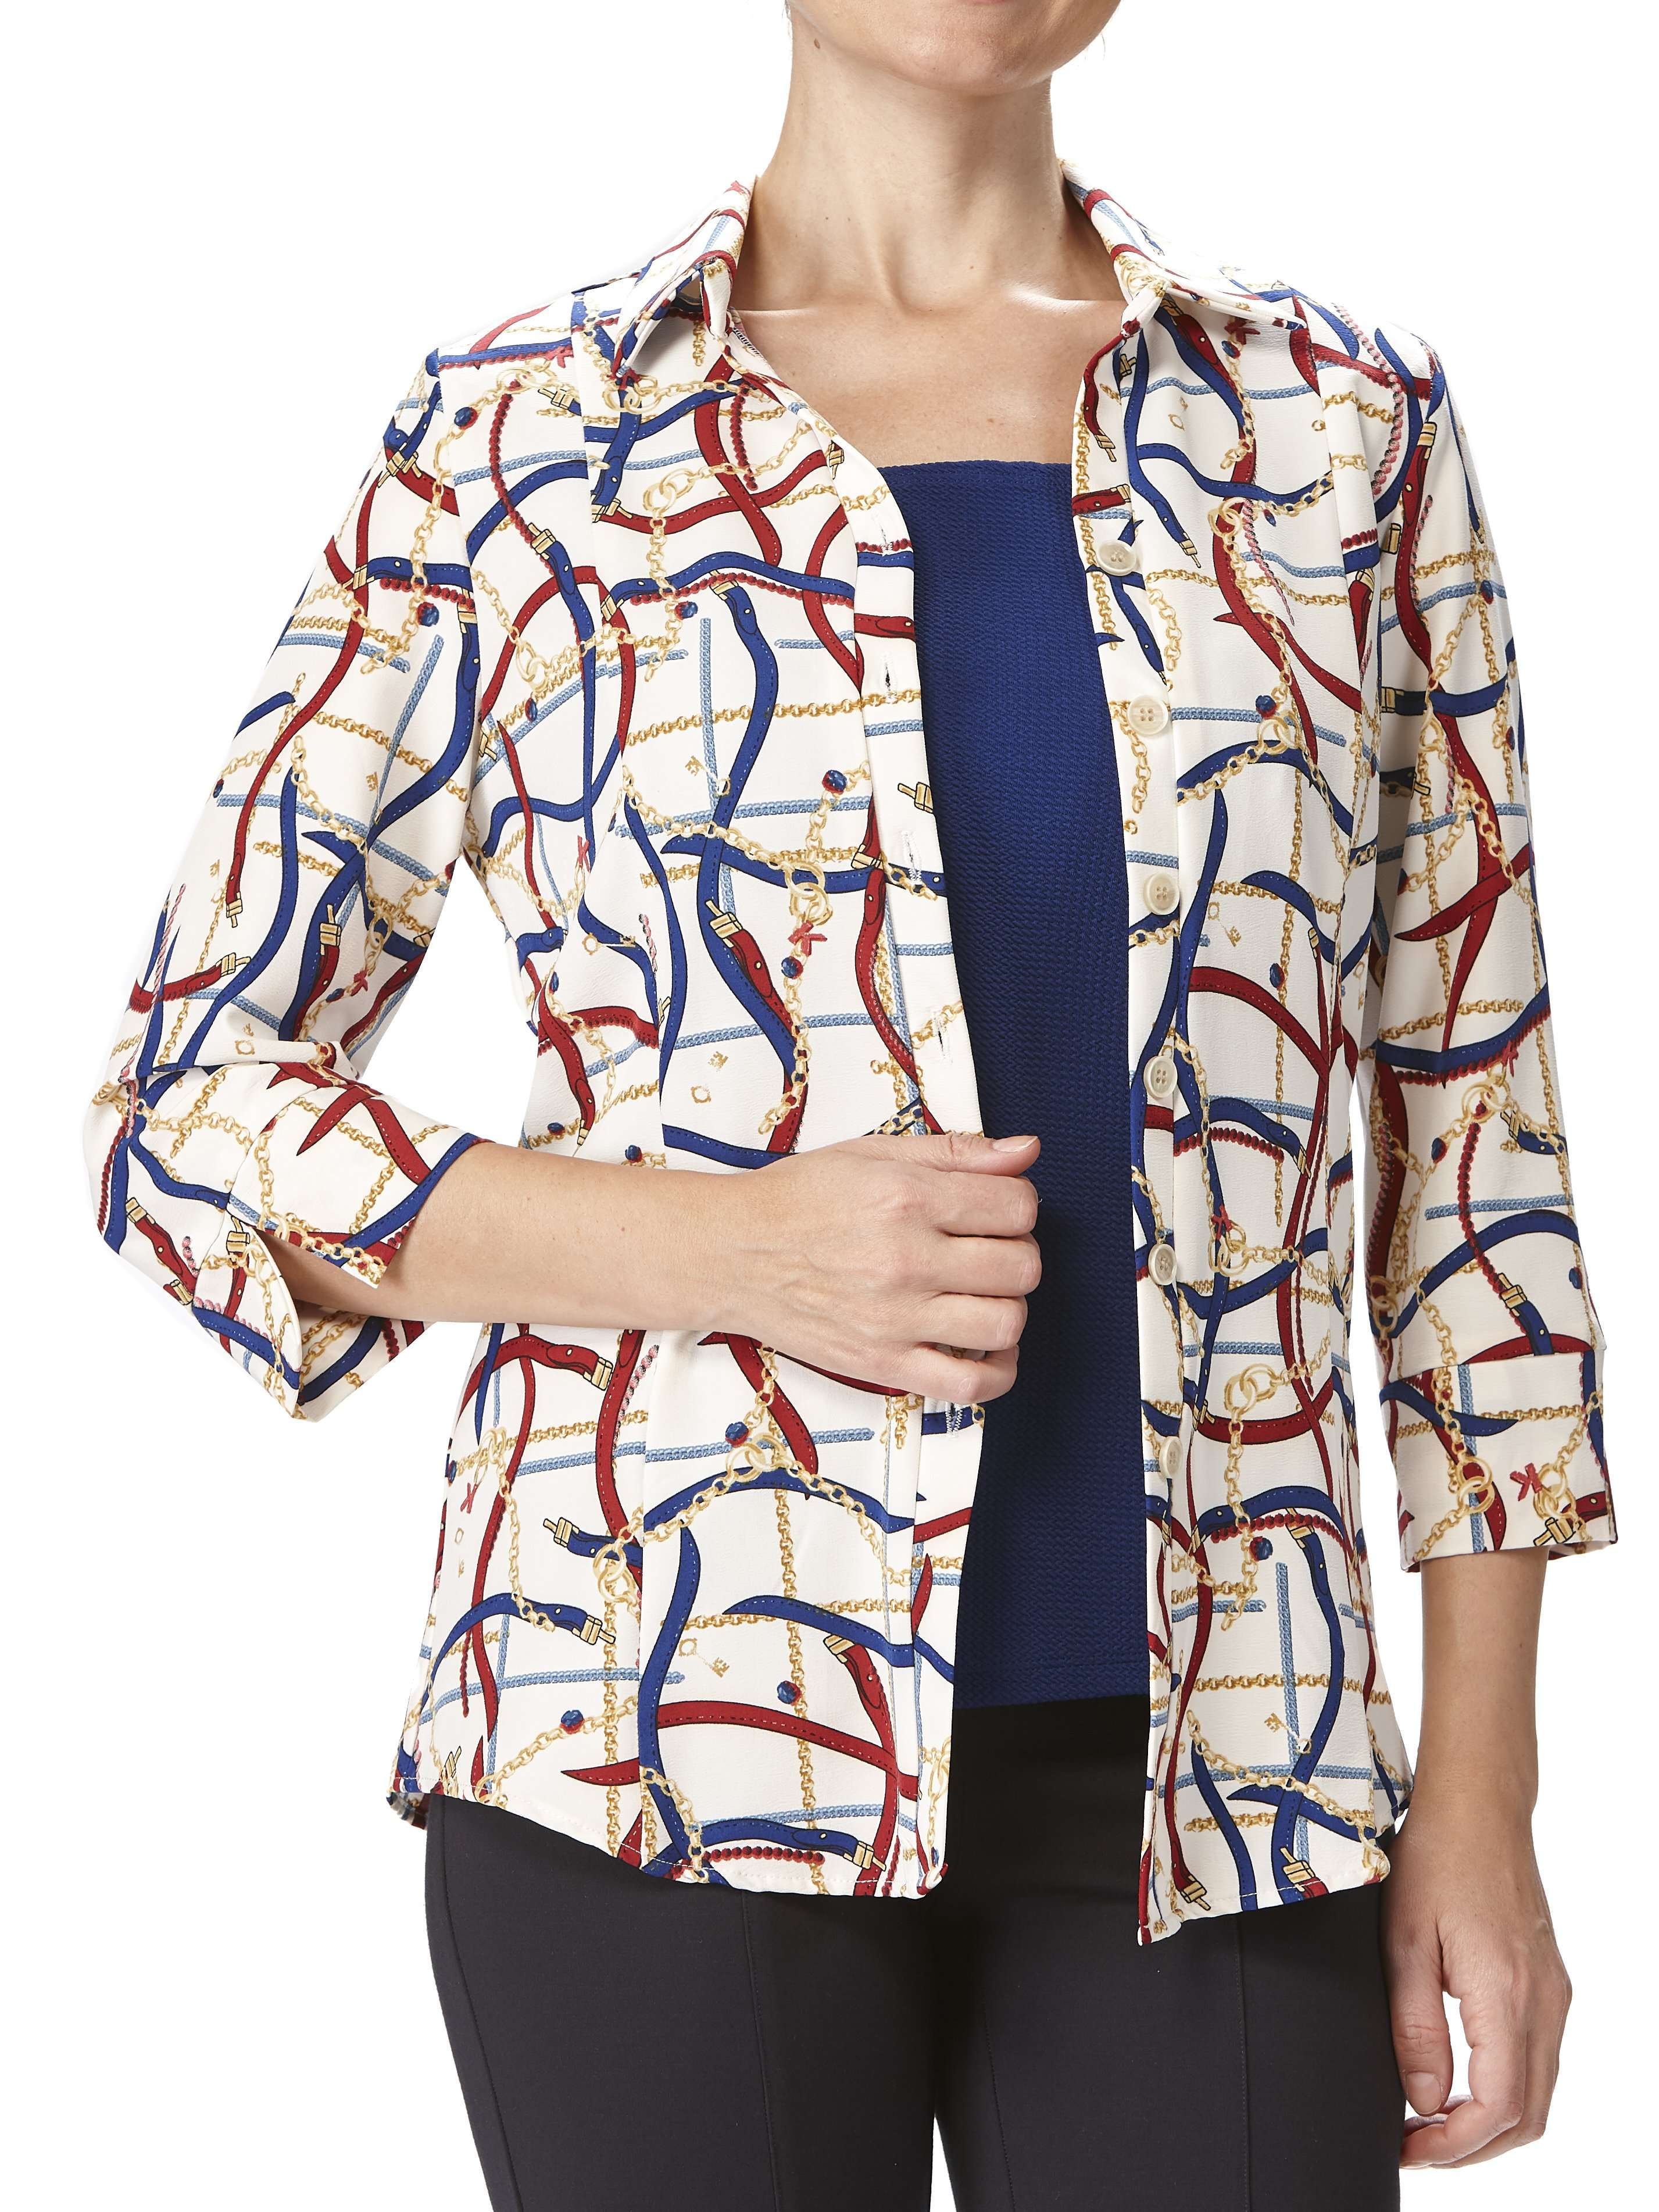 Women's Blouses on Sale Designer Print - Made in Canada - Yvonne Marie - Yvonne Marie